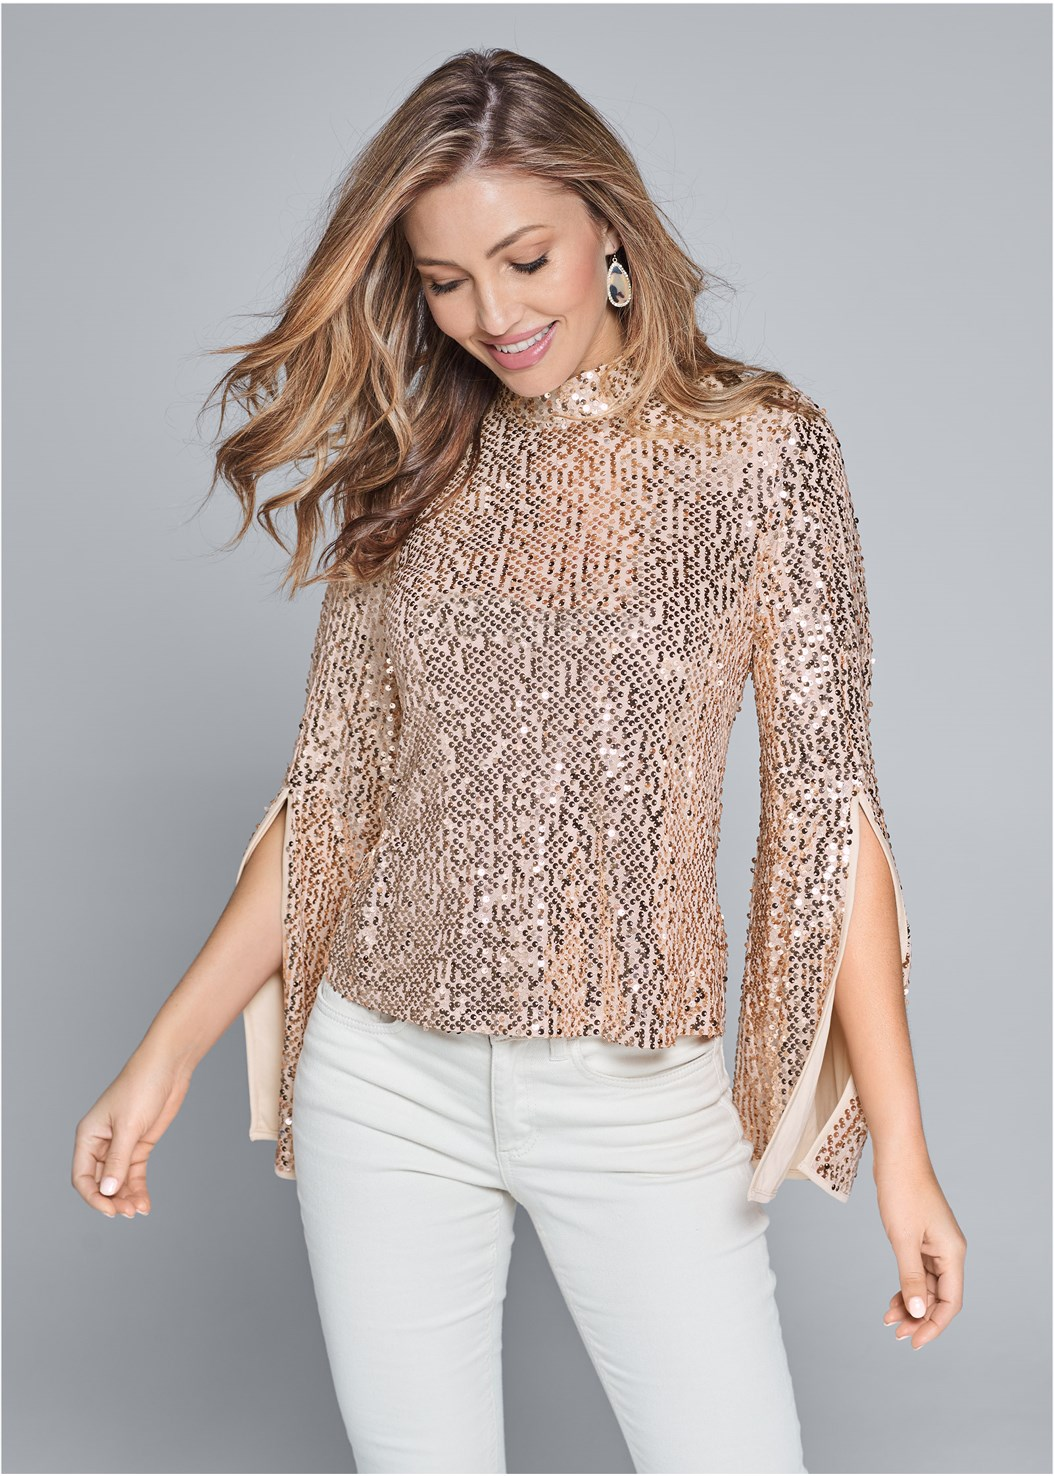 Sequin Mock Neck Top,Mid Rise Color Skinny Jeans,Ankle Strap Heels